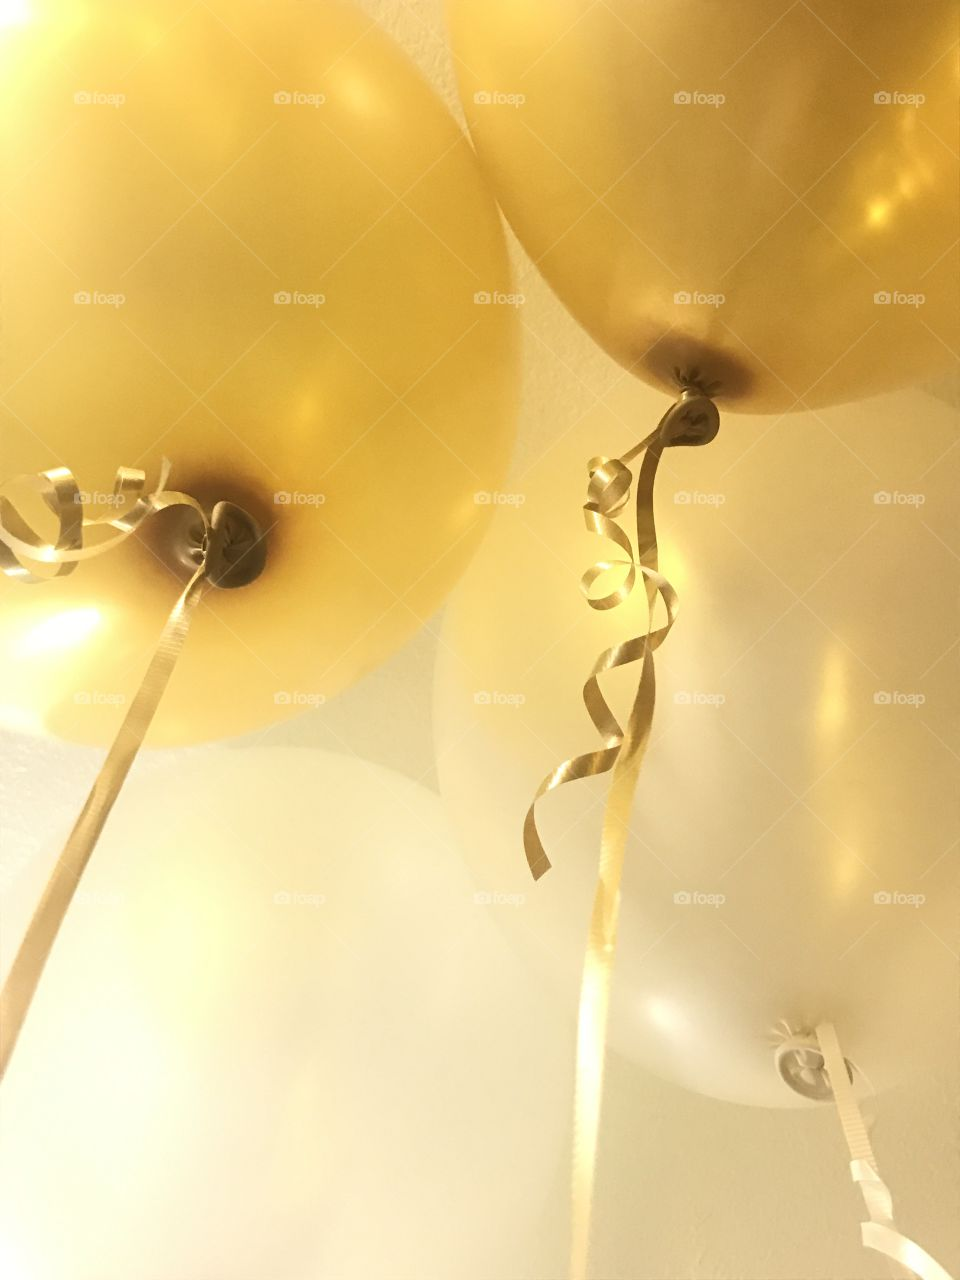 Decoration, Gold, Abstract, Insubstantial, Bright